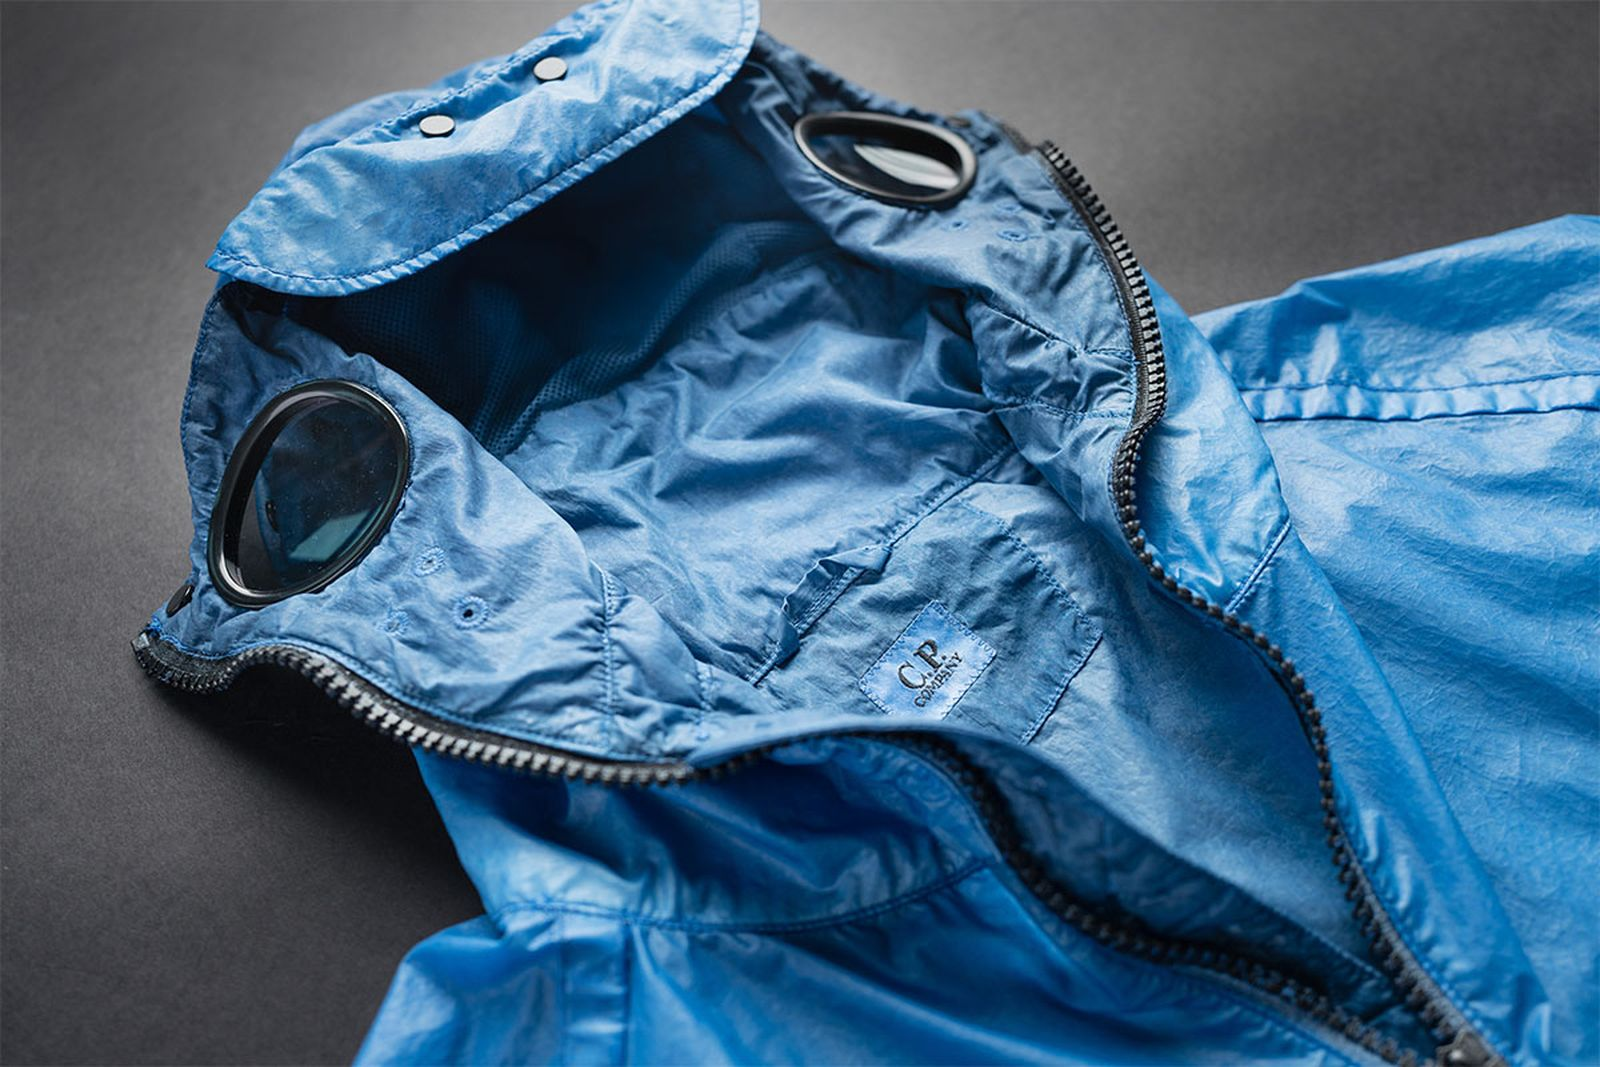 The NyBer Special Dyed Goggle Jacket in 'Riviera' blue.